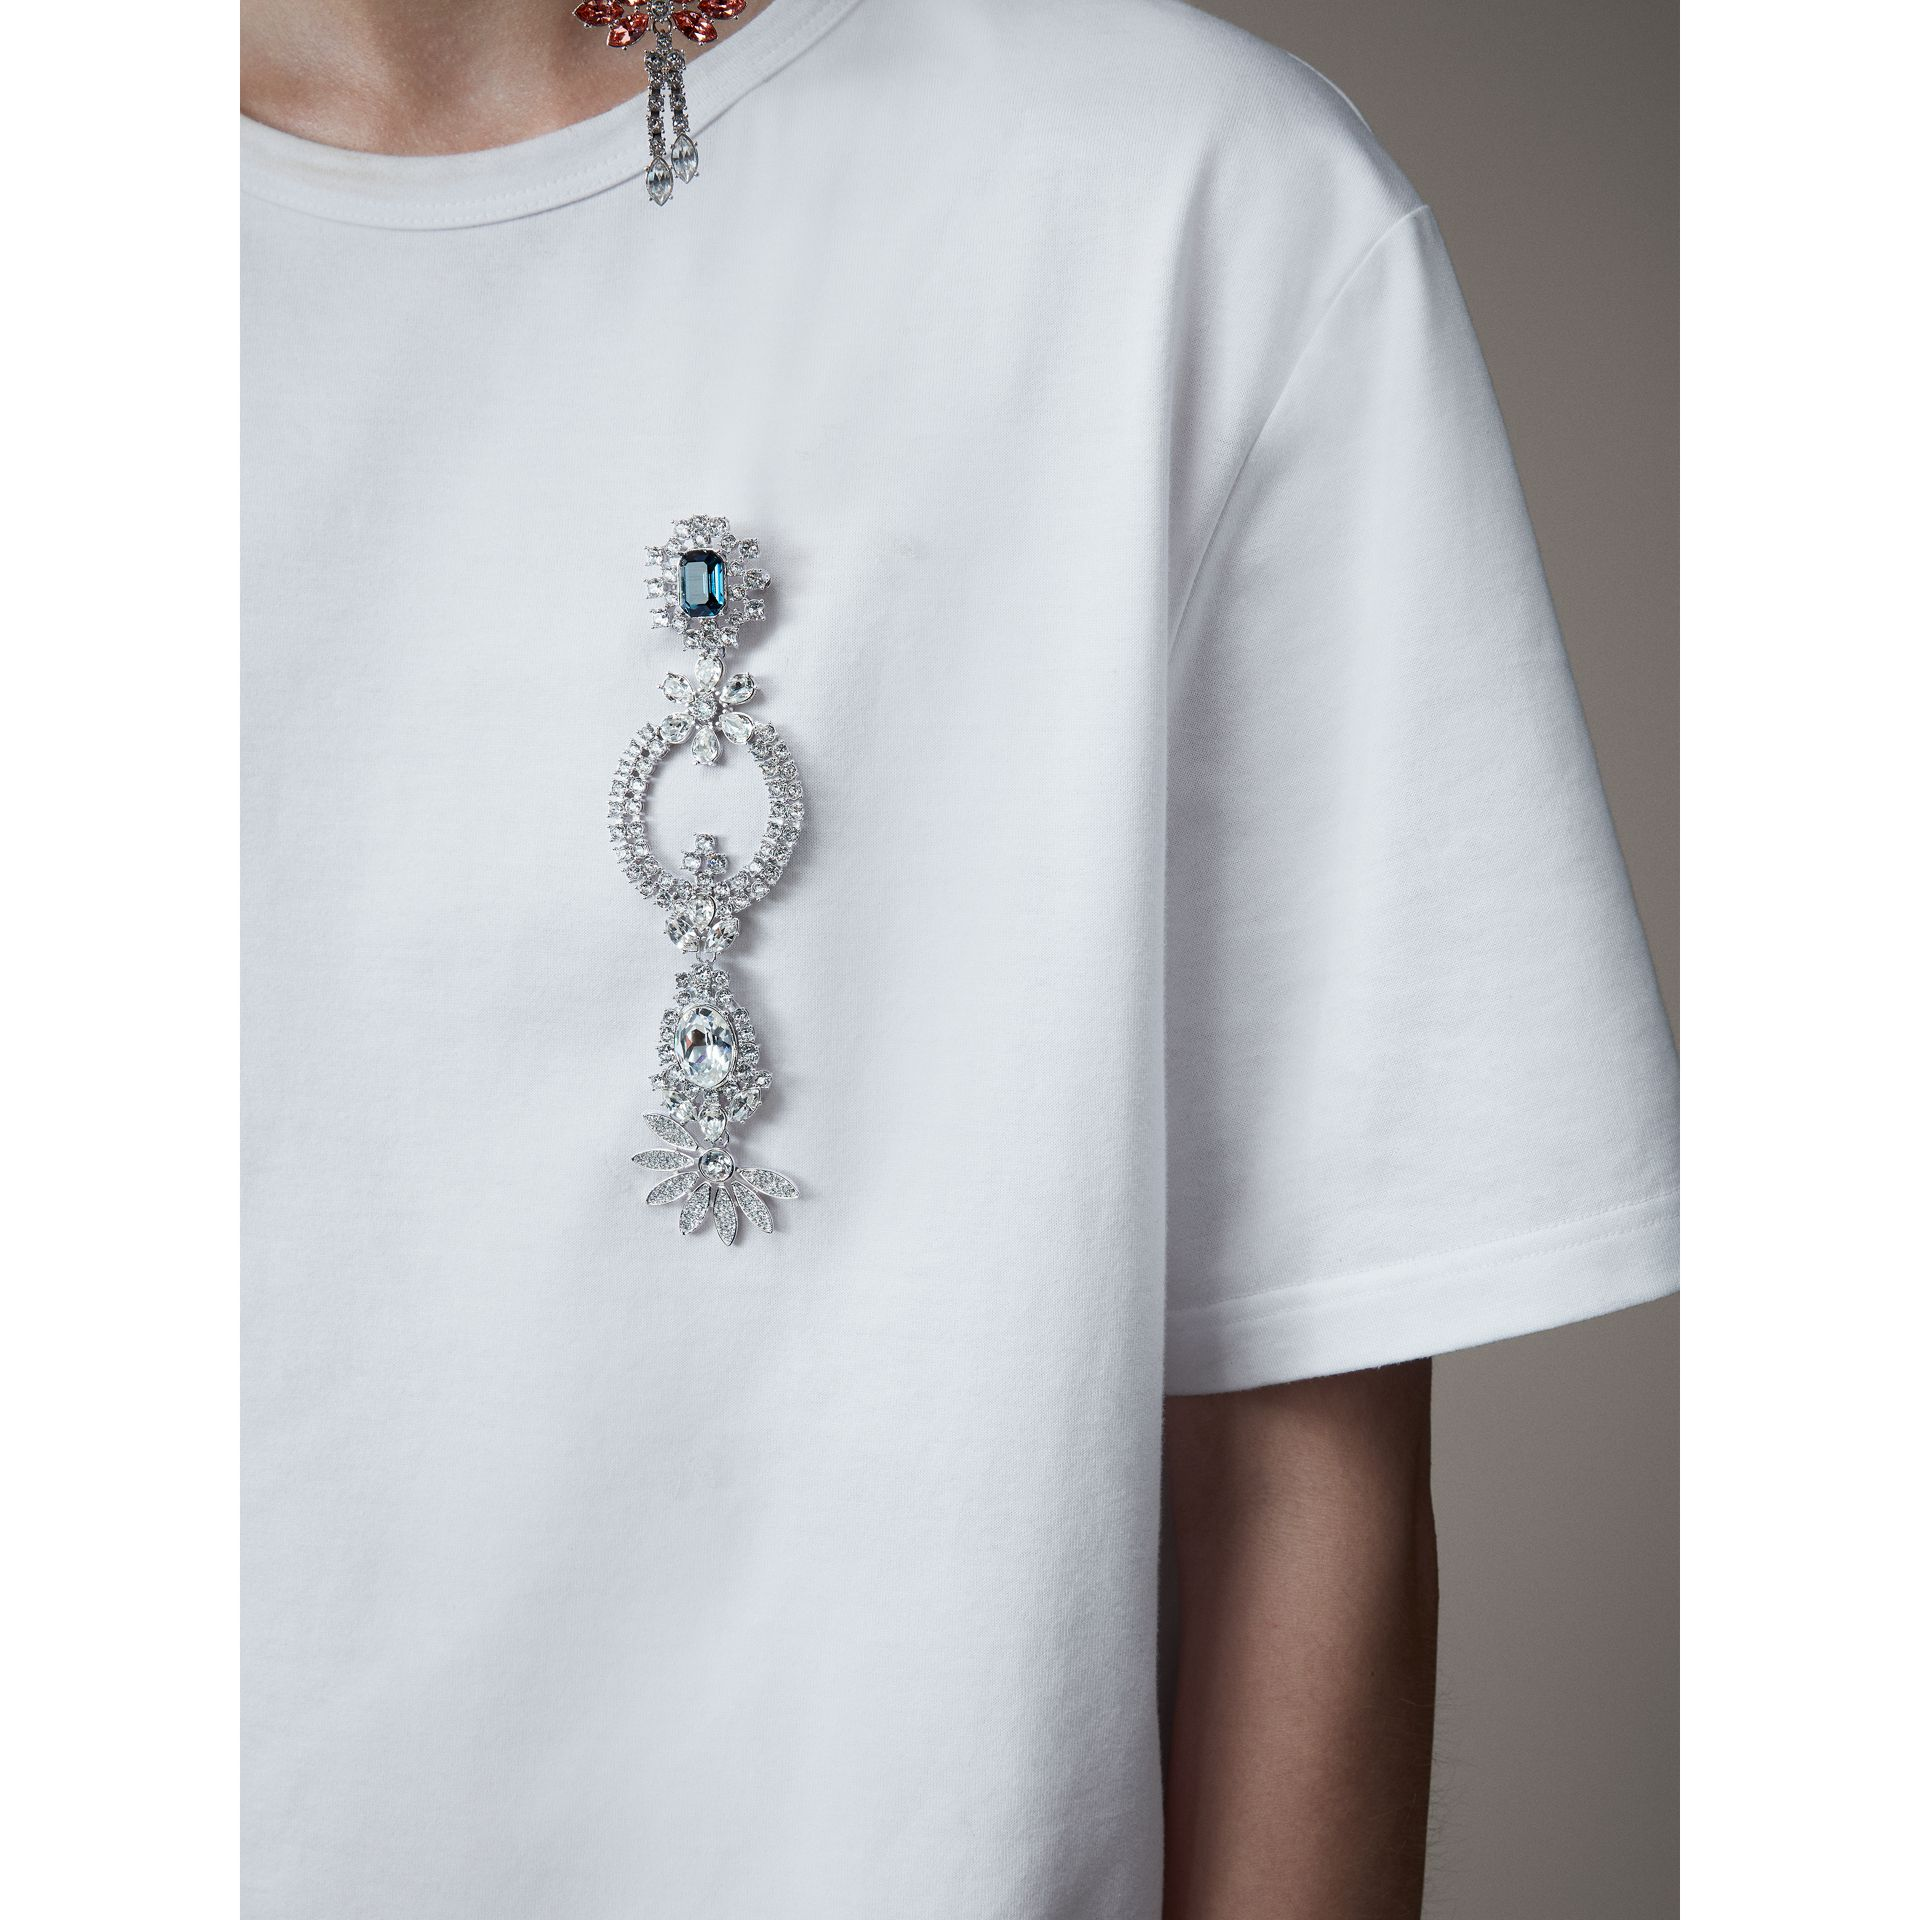 Boyfriend Fit T-shirt with Crystal Brooch in Optic White - Women | Burberry Hong Kong - gallery image 1